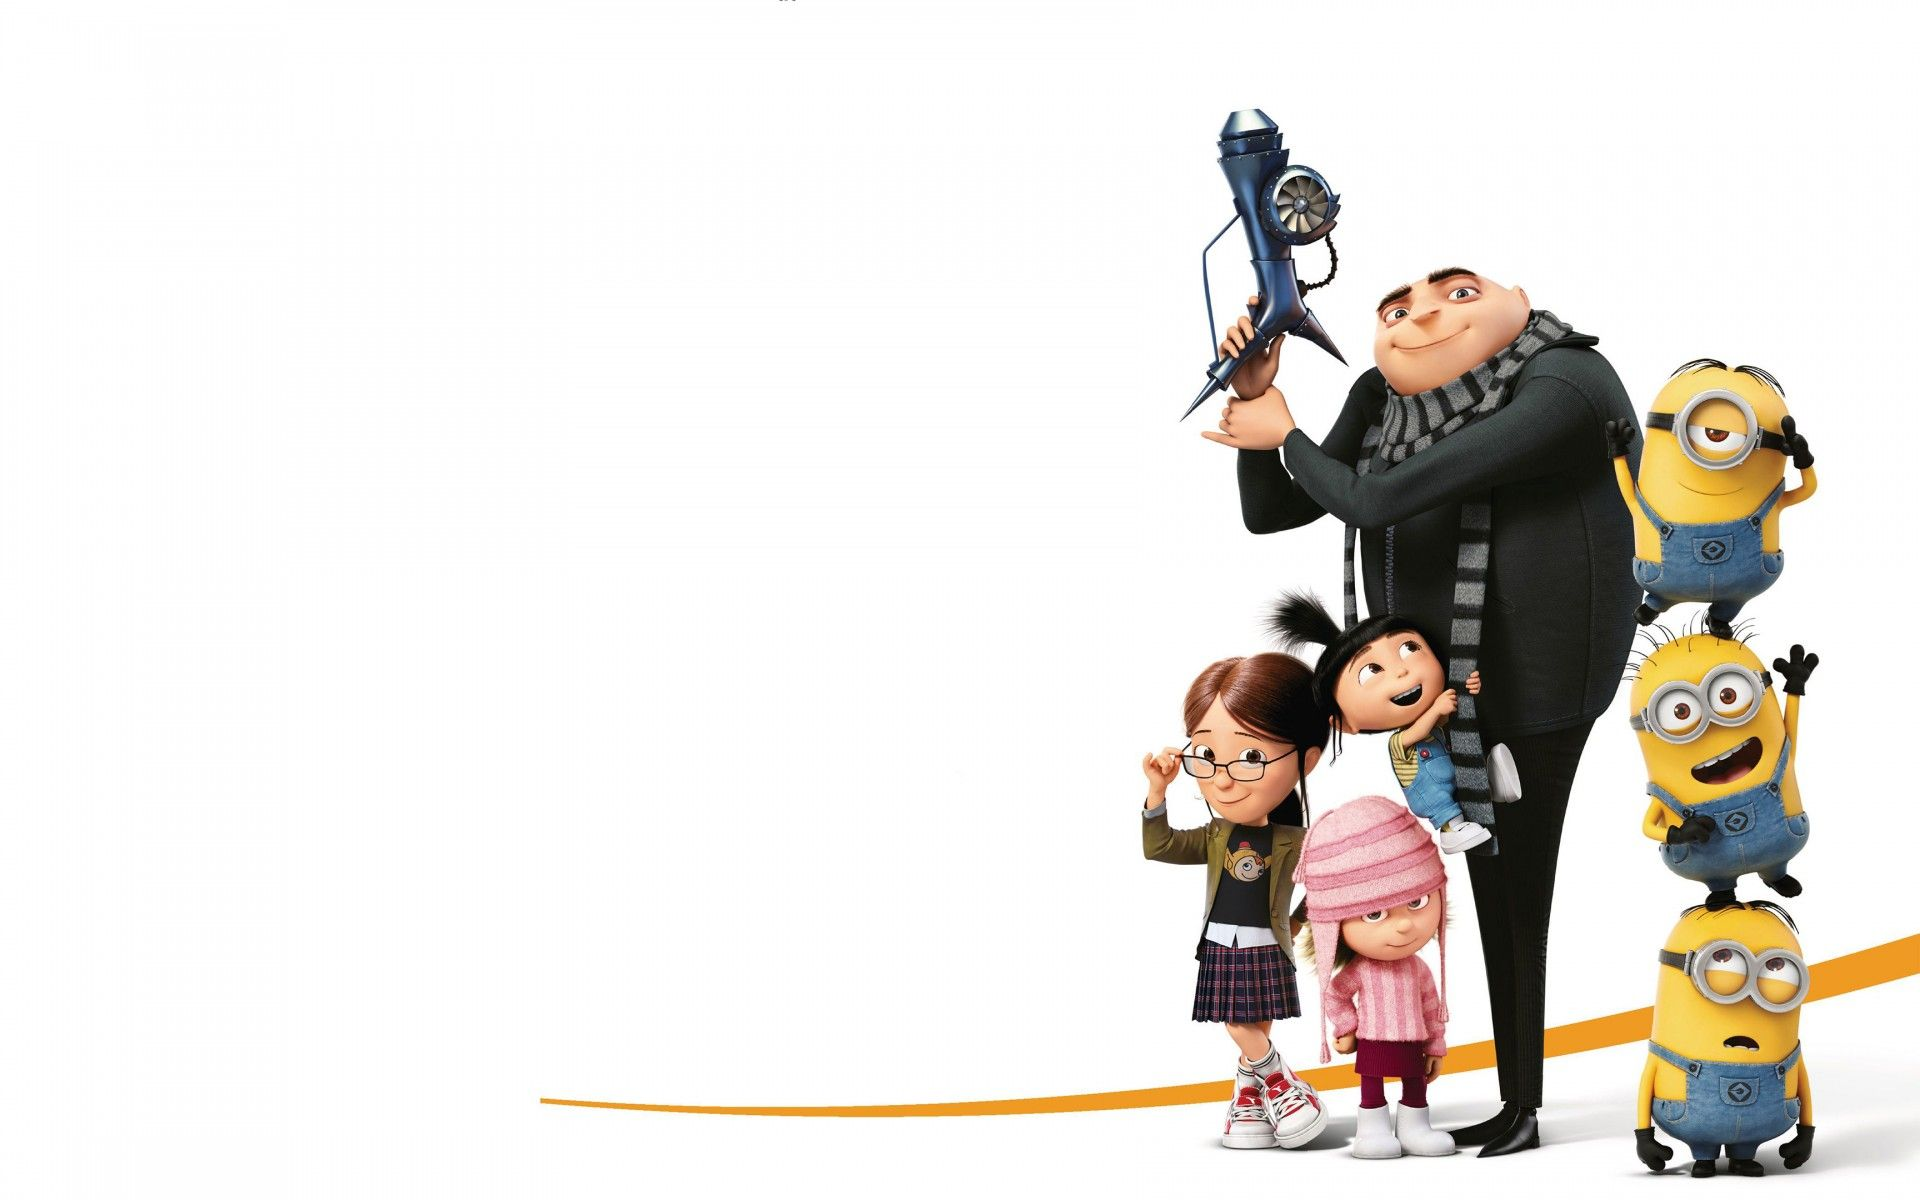 Download high quality Despicable Me 3 2017 Animation